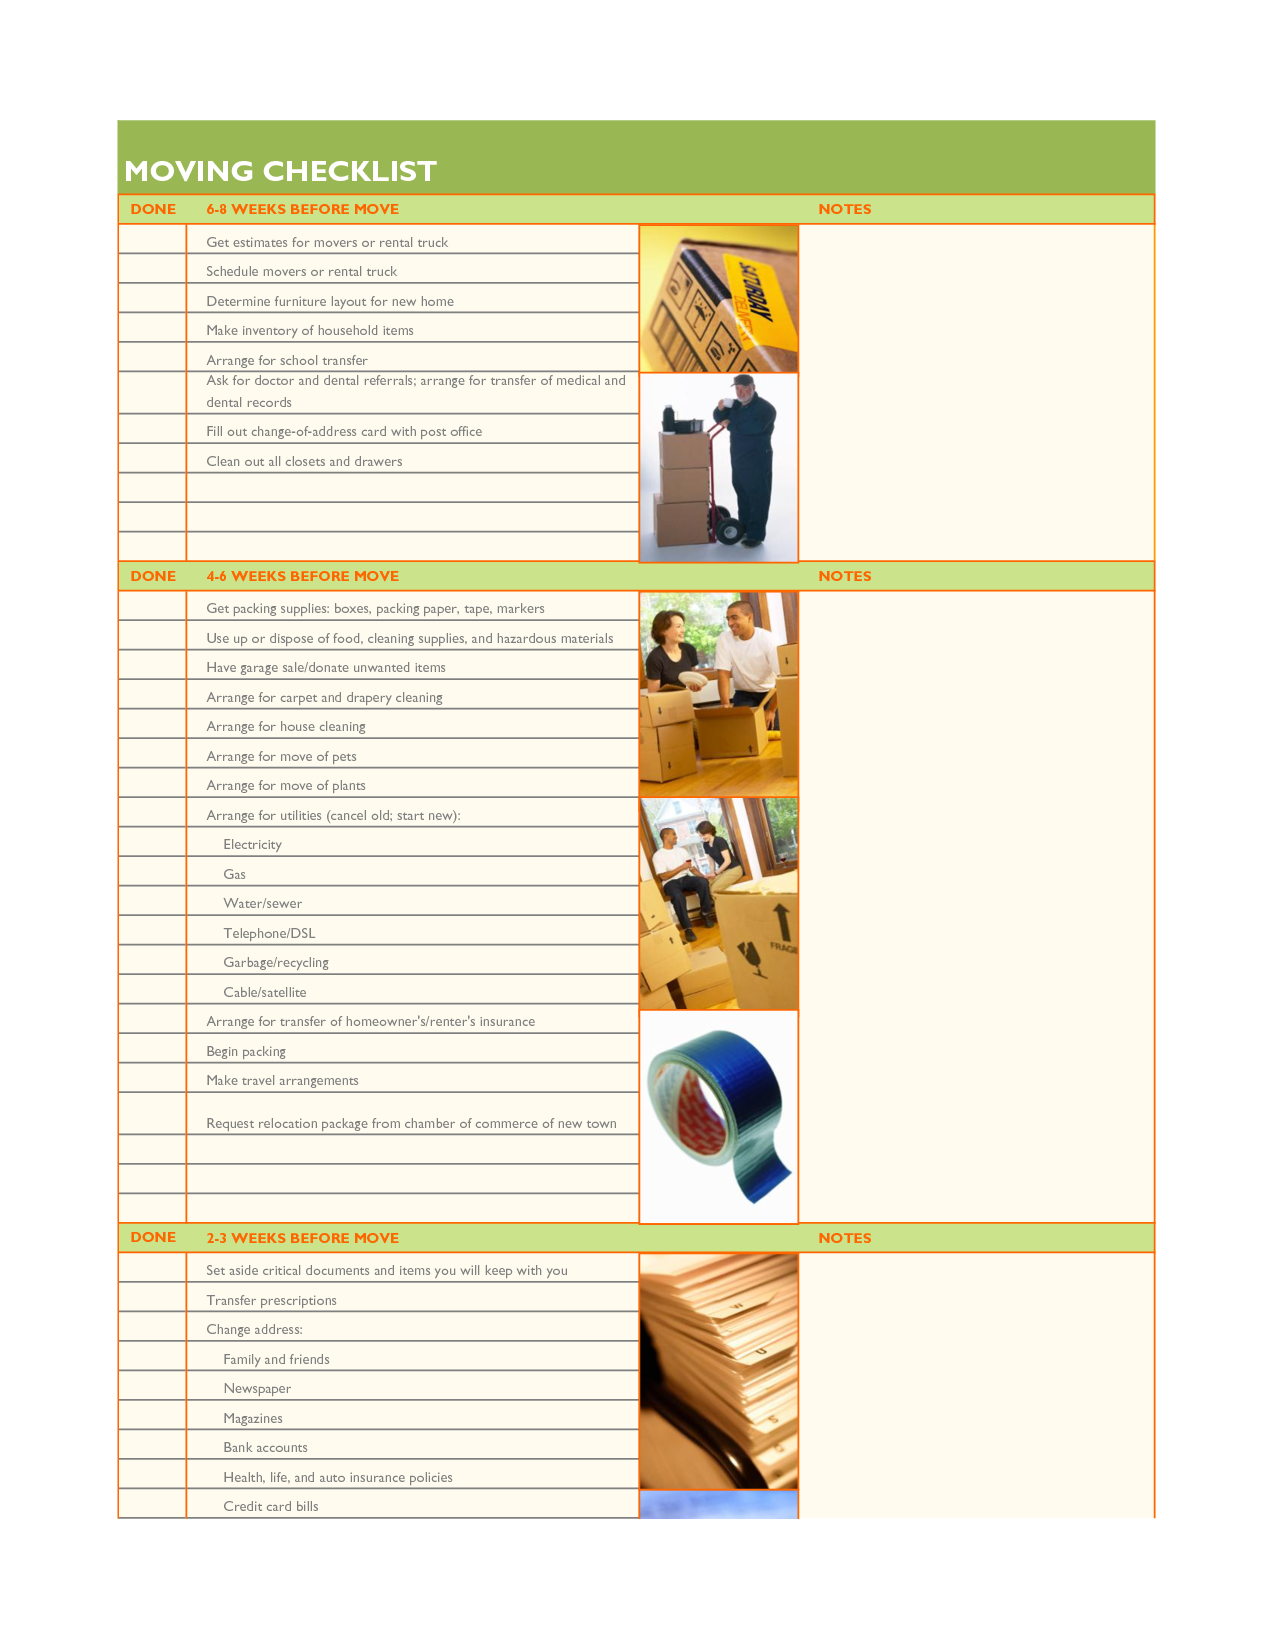 Moving Checklist Template Google Search Work Pinterest